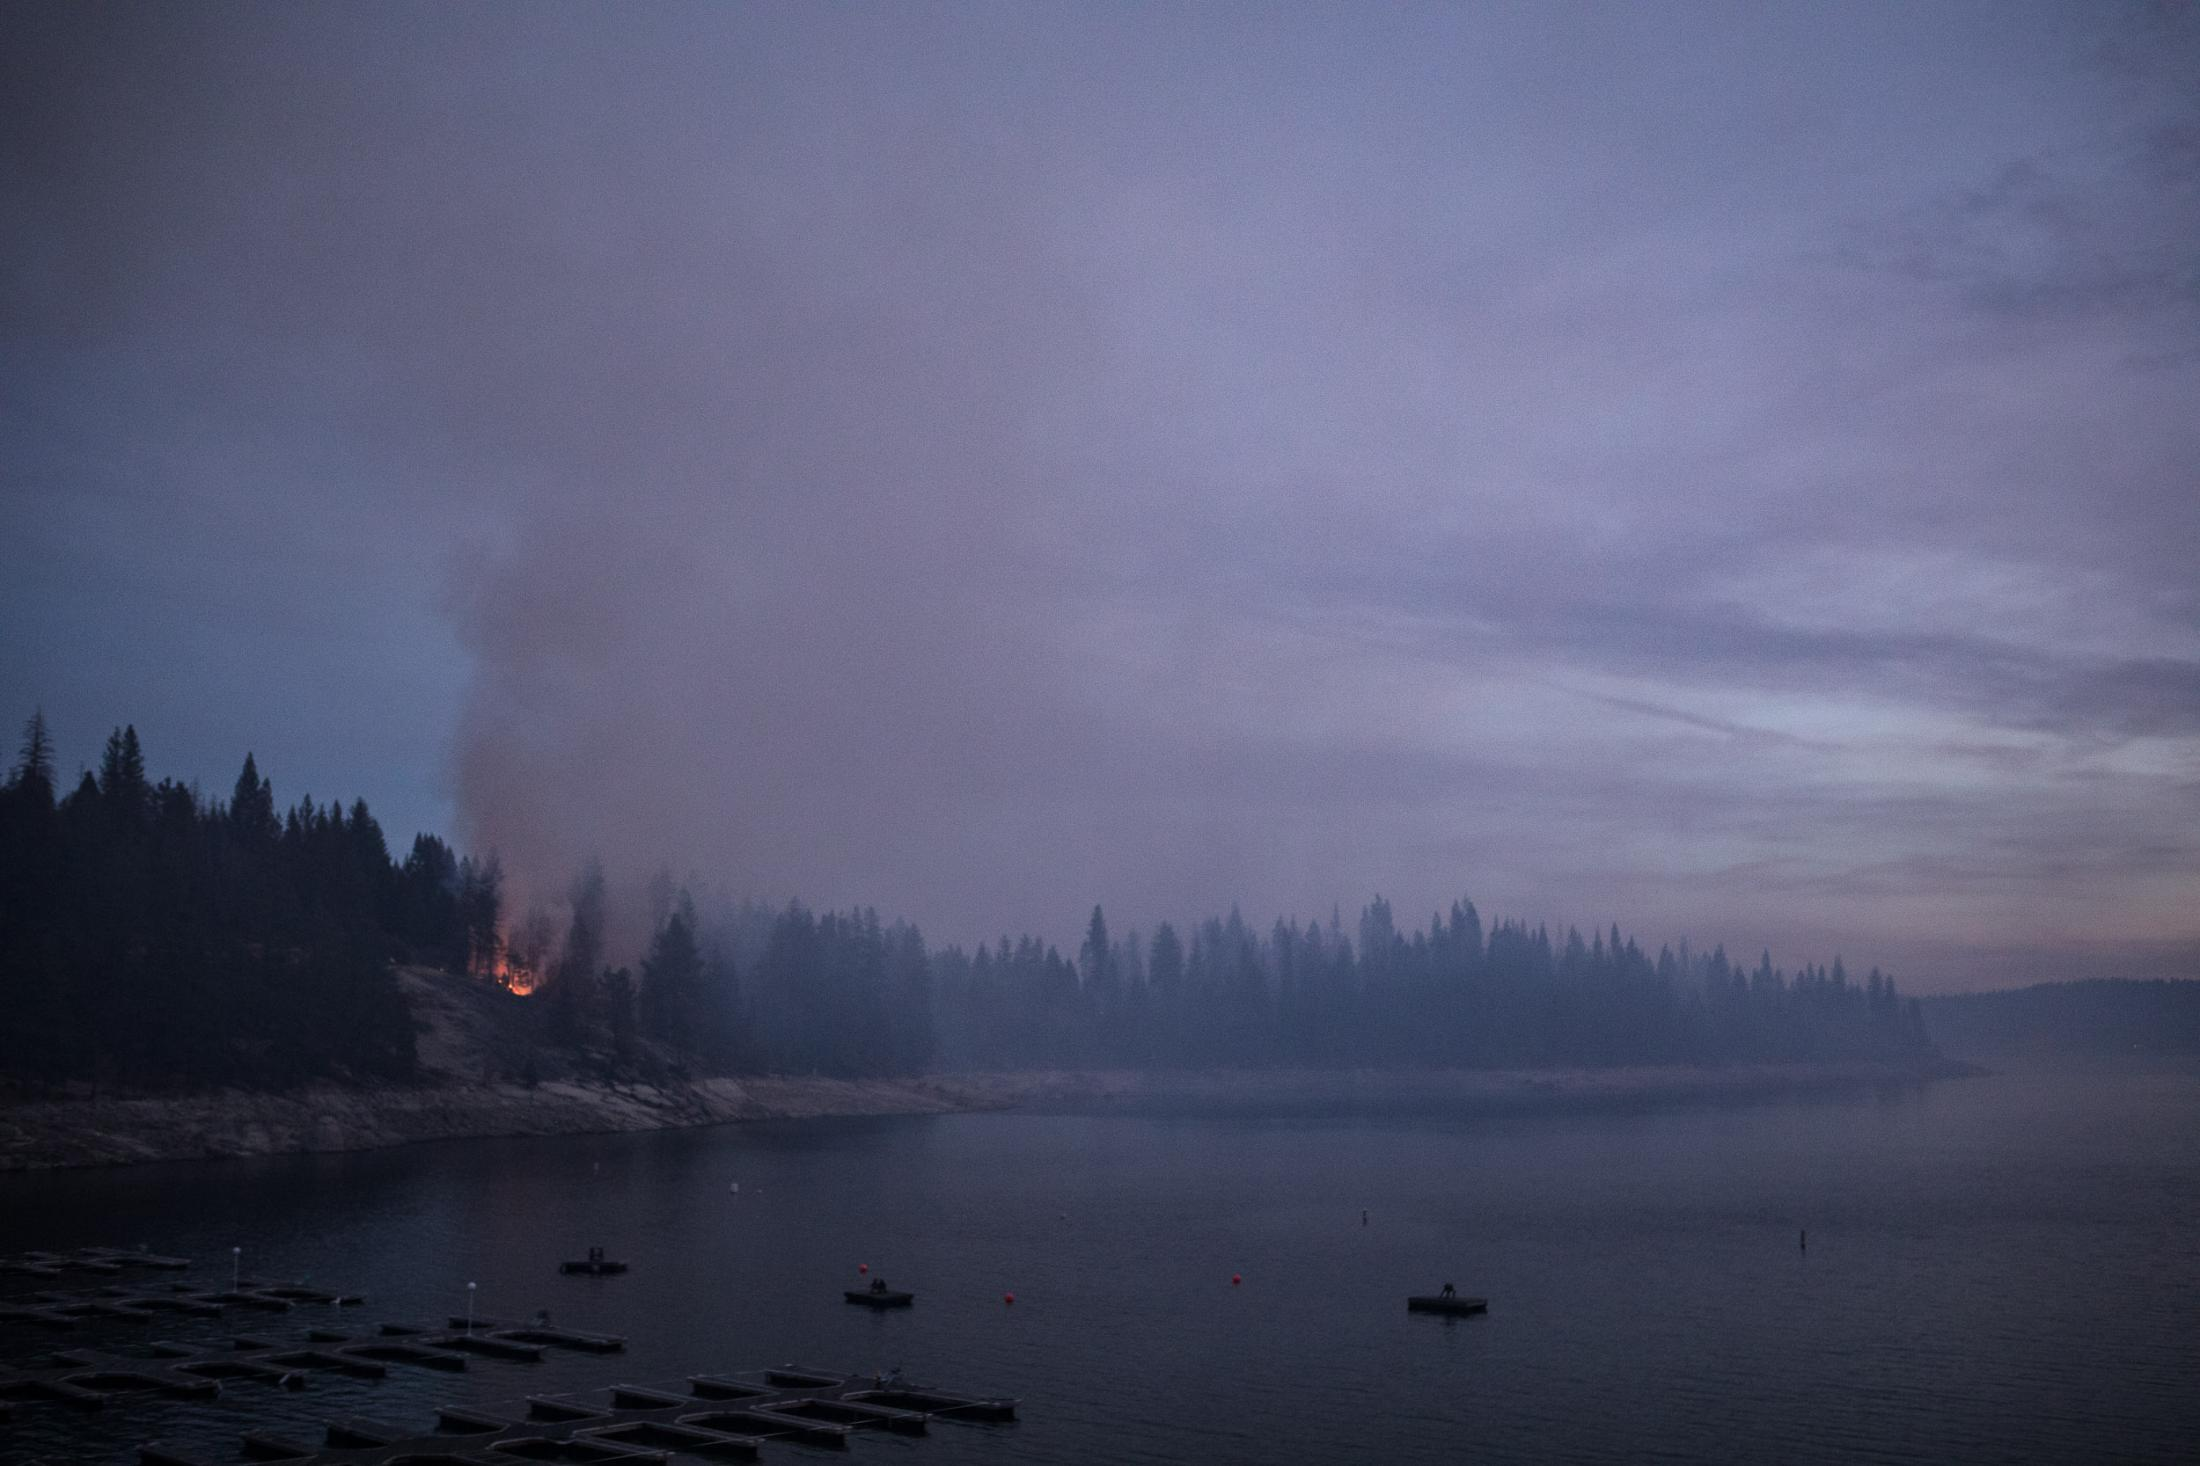 6. Fire reflecting in Shaver Lake. Nov 2017